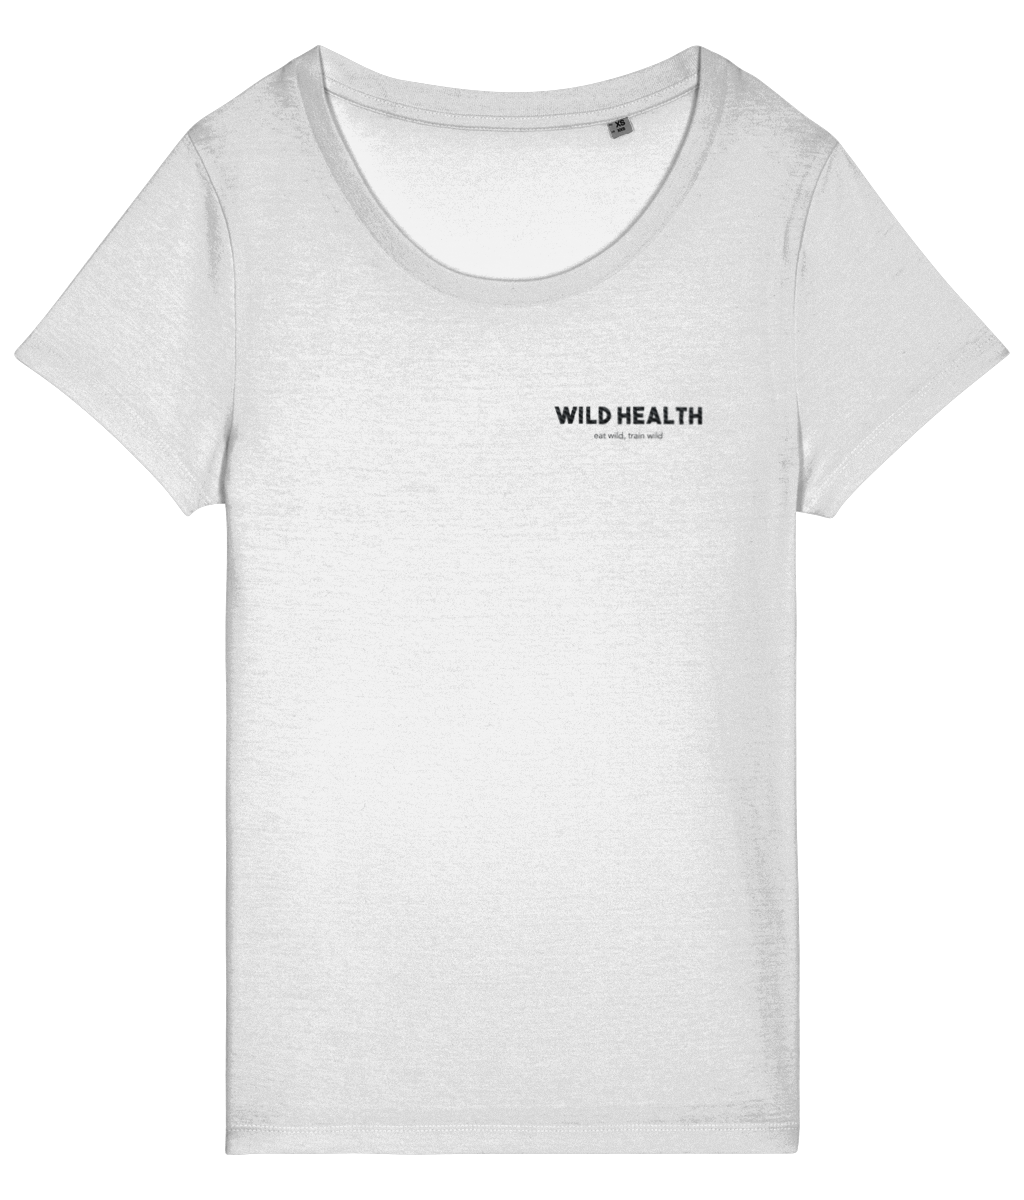 Wild Health Embroidered Stella T-Shirt - White/Black